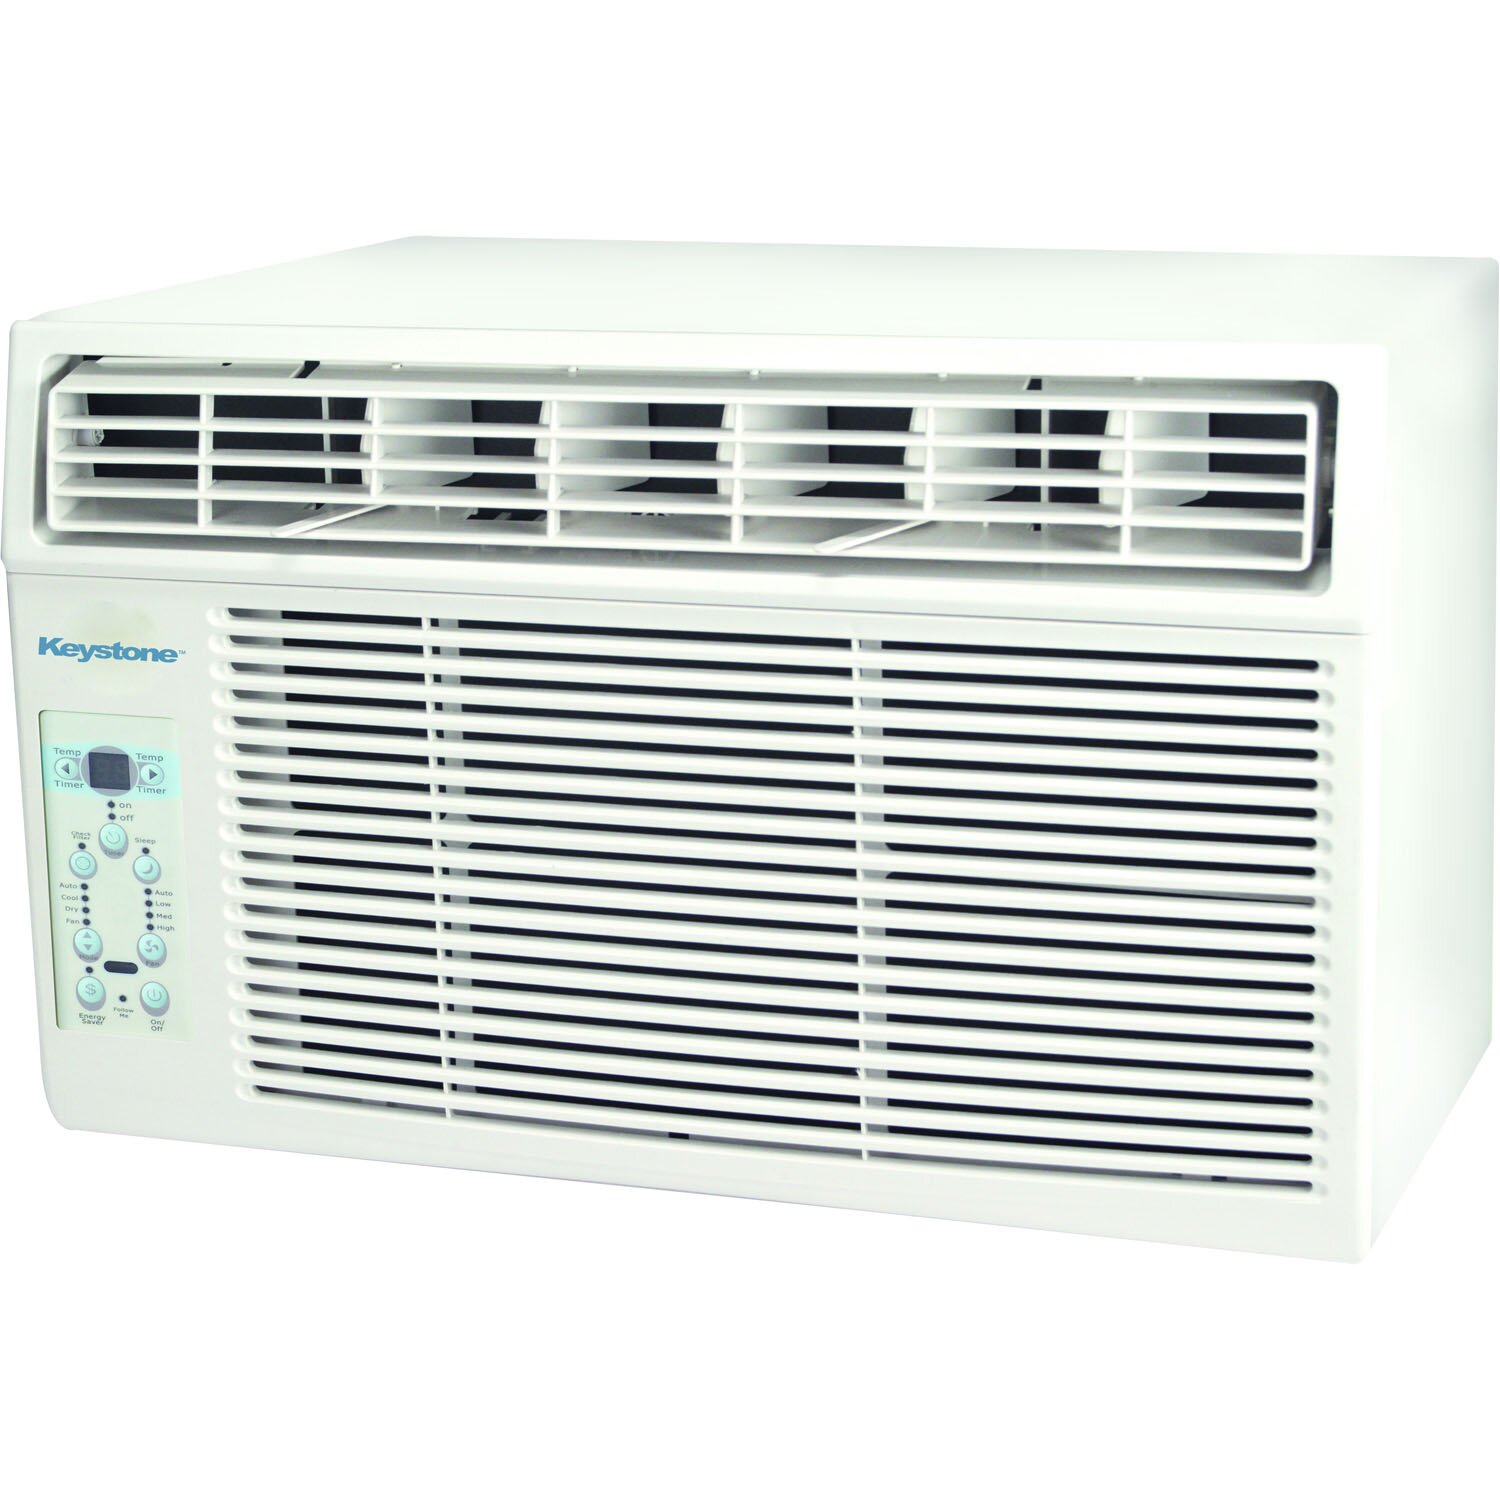 12 000 btu window air conditioner with remote wayfair for 12 000 btu window air conditioner with heat